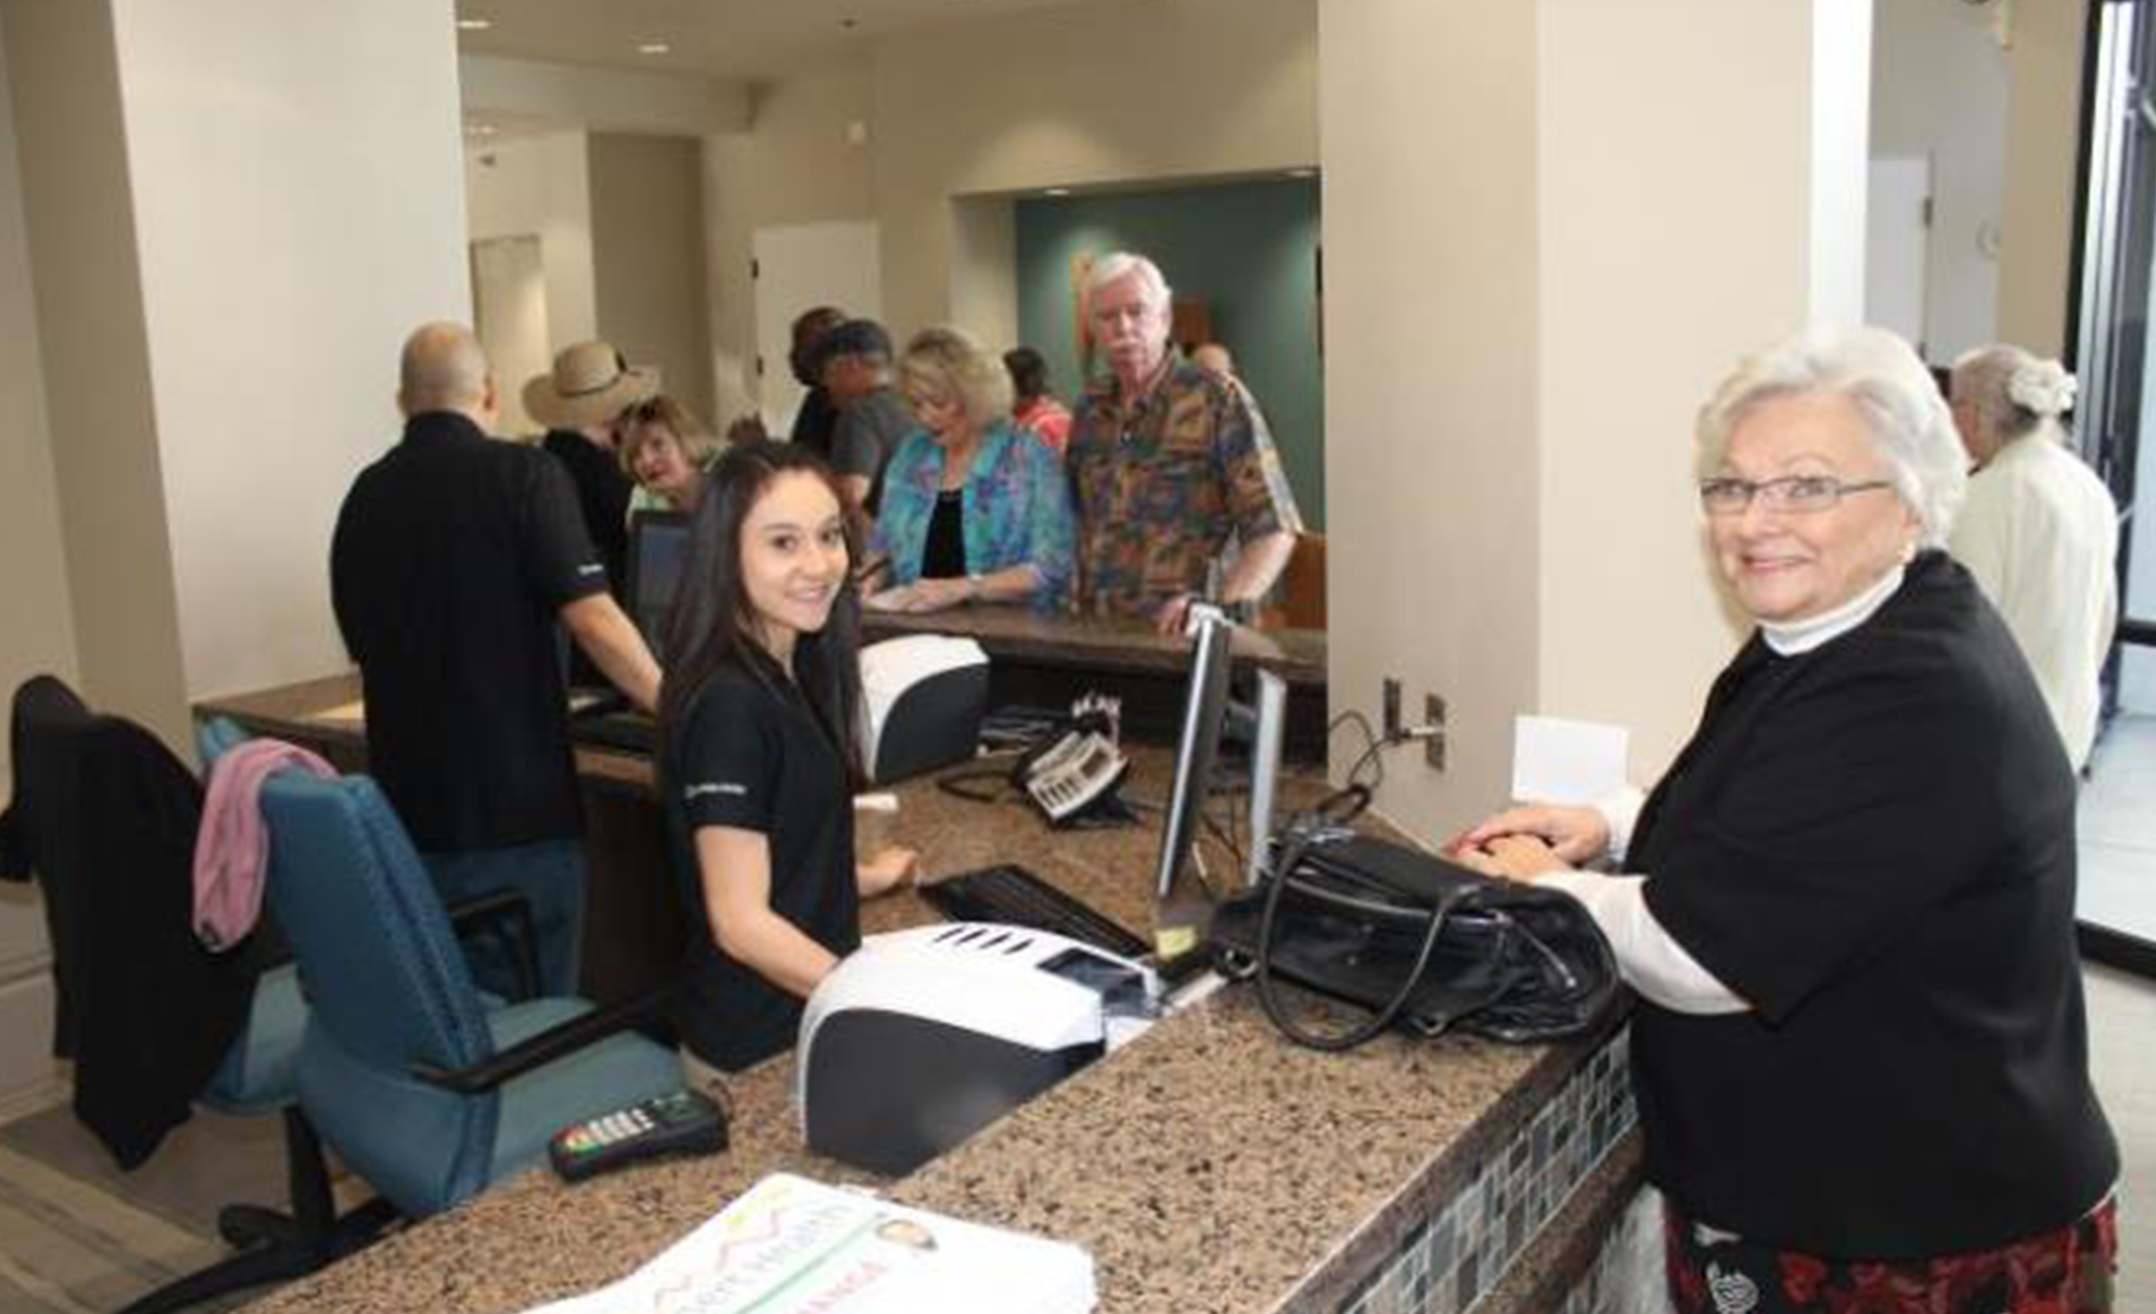 Friendly service at the La Quinta Senior & Wellness Center